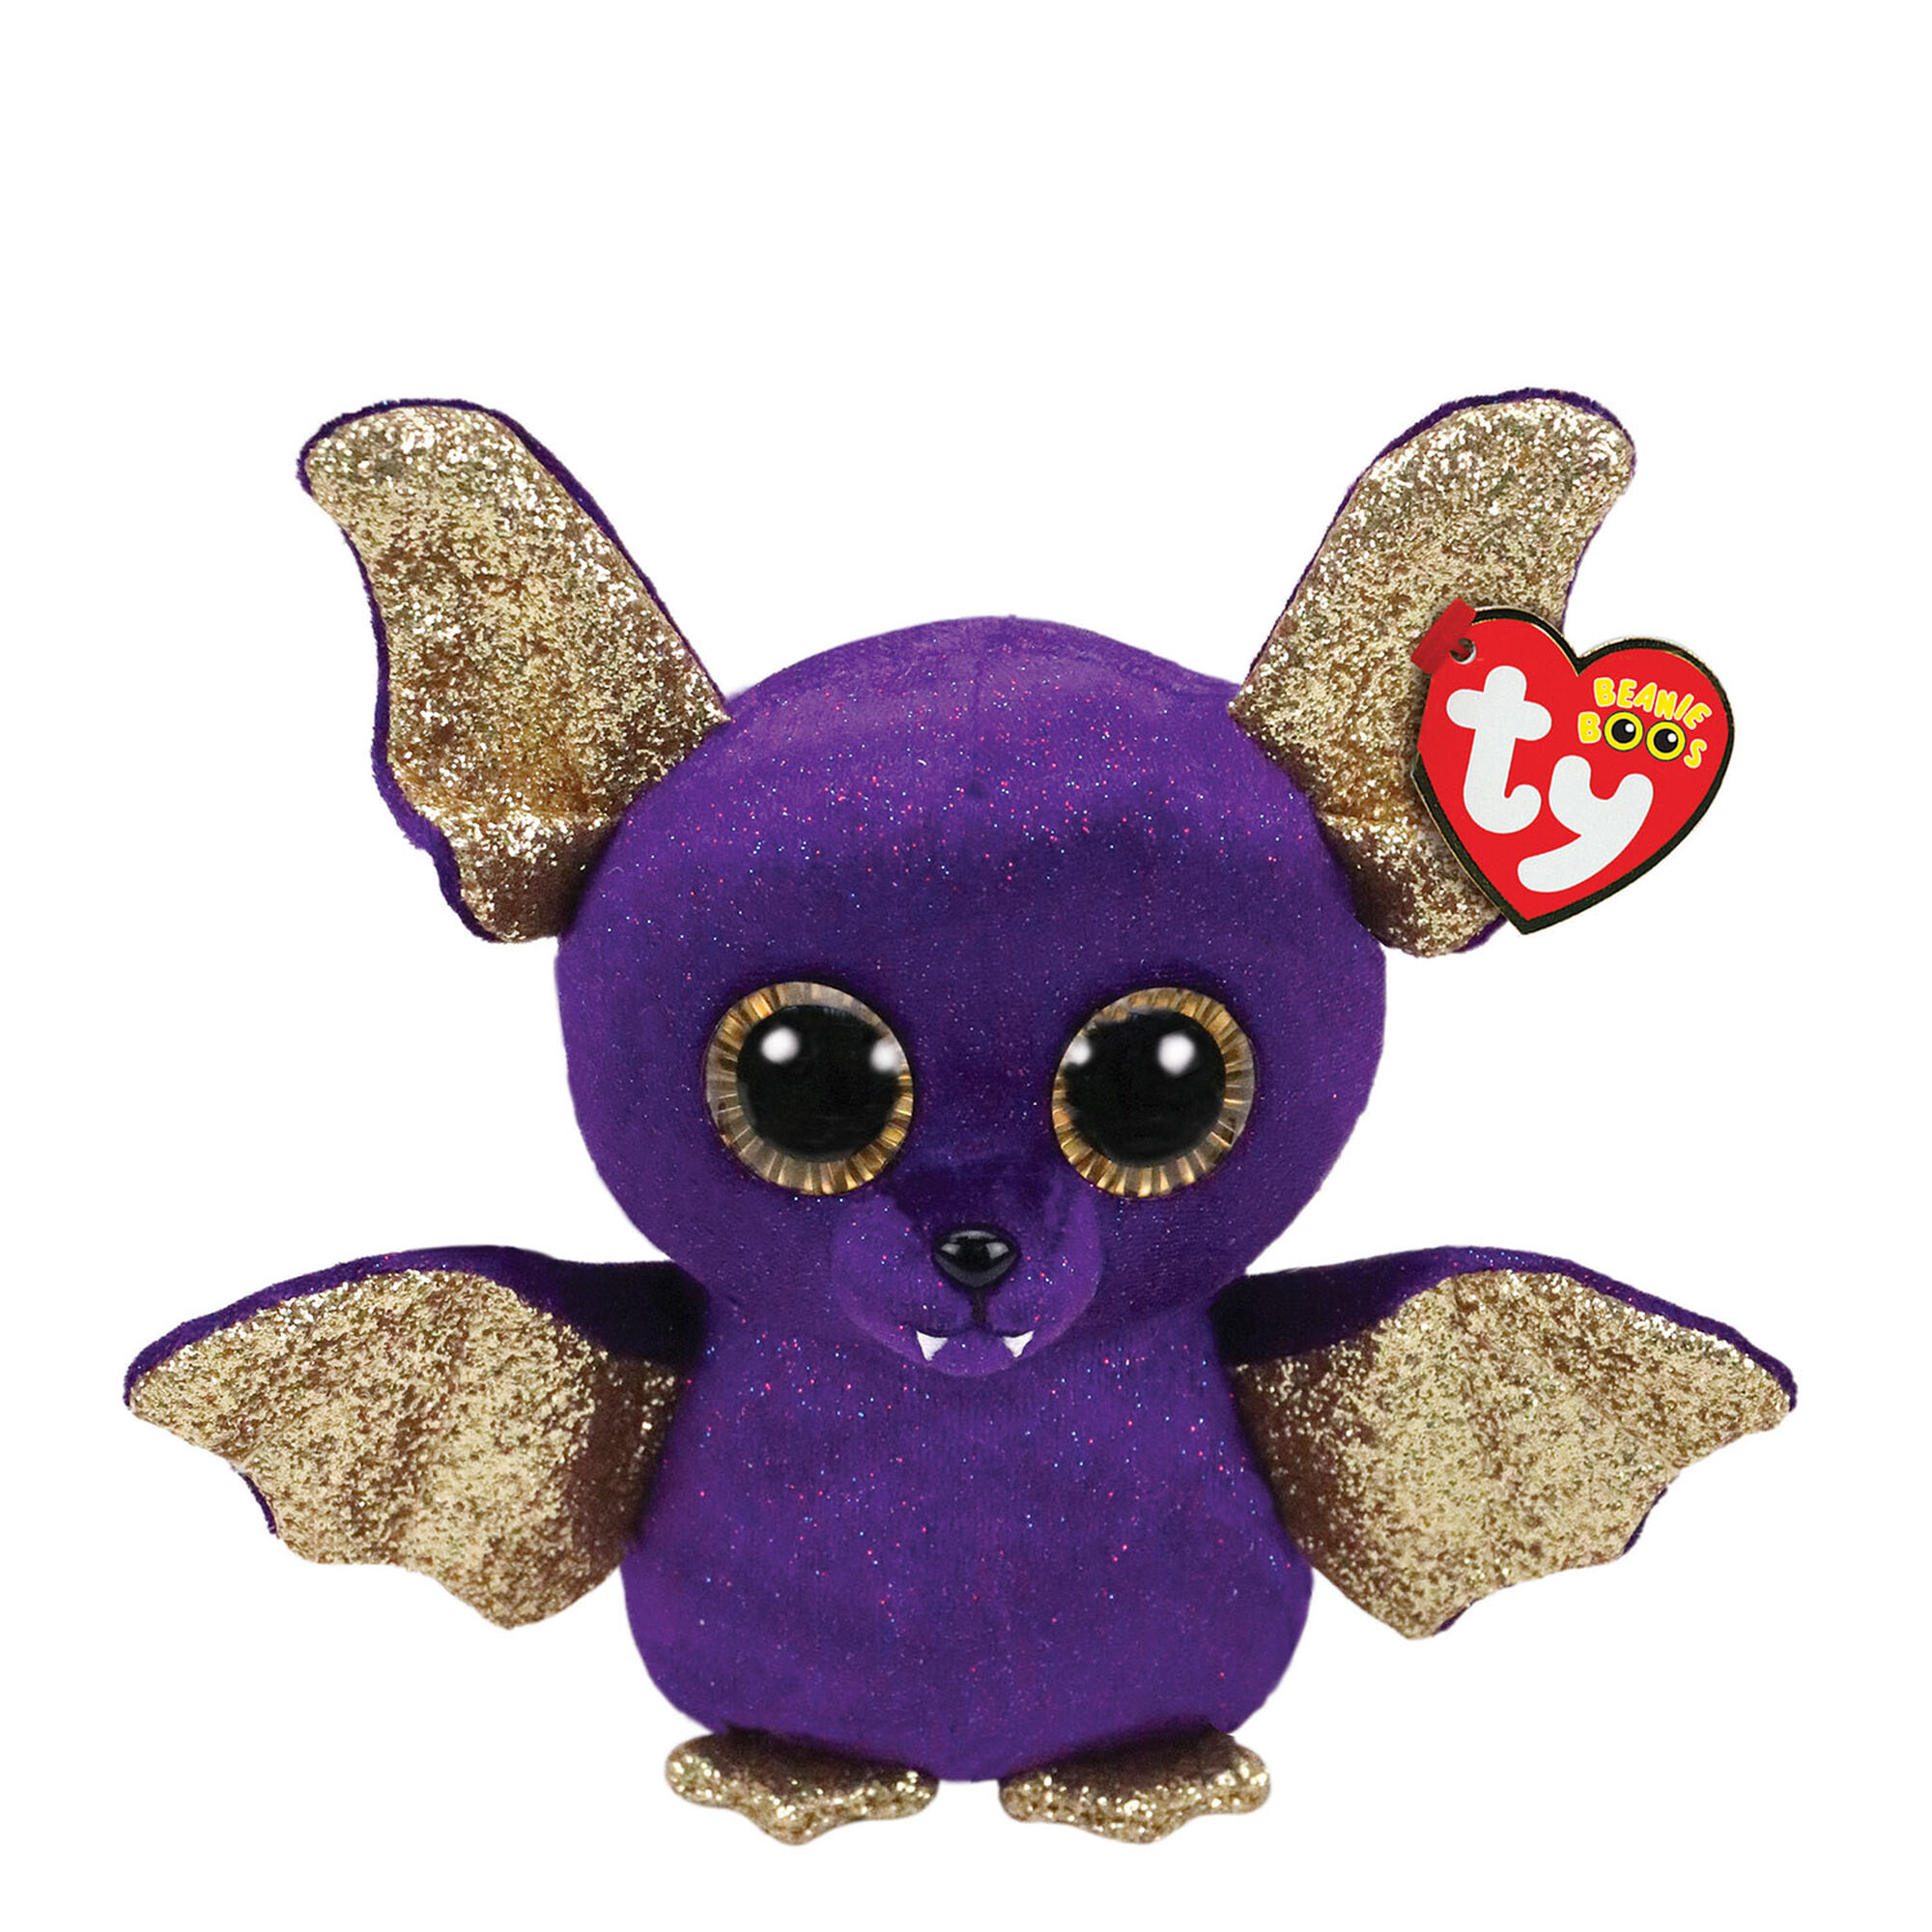 8a101004178 ... Ty Beanie Boo Small Count the Bat Soft Toy